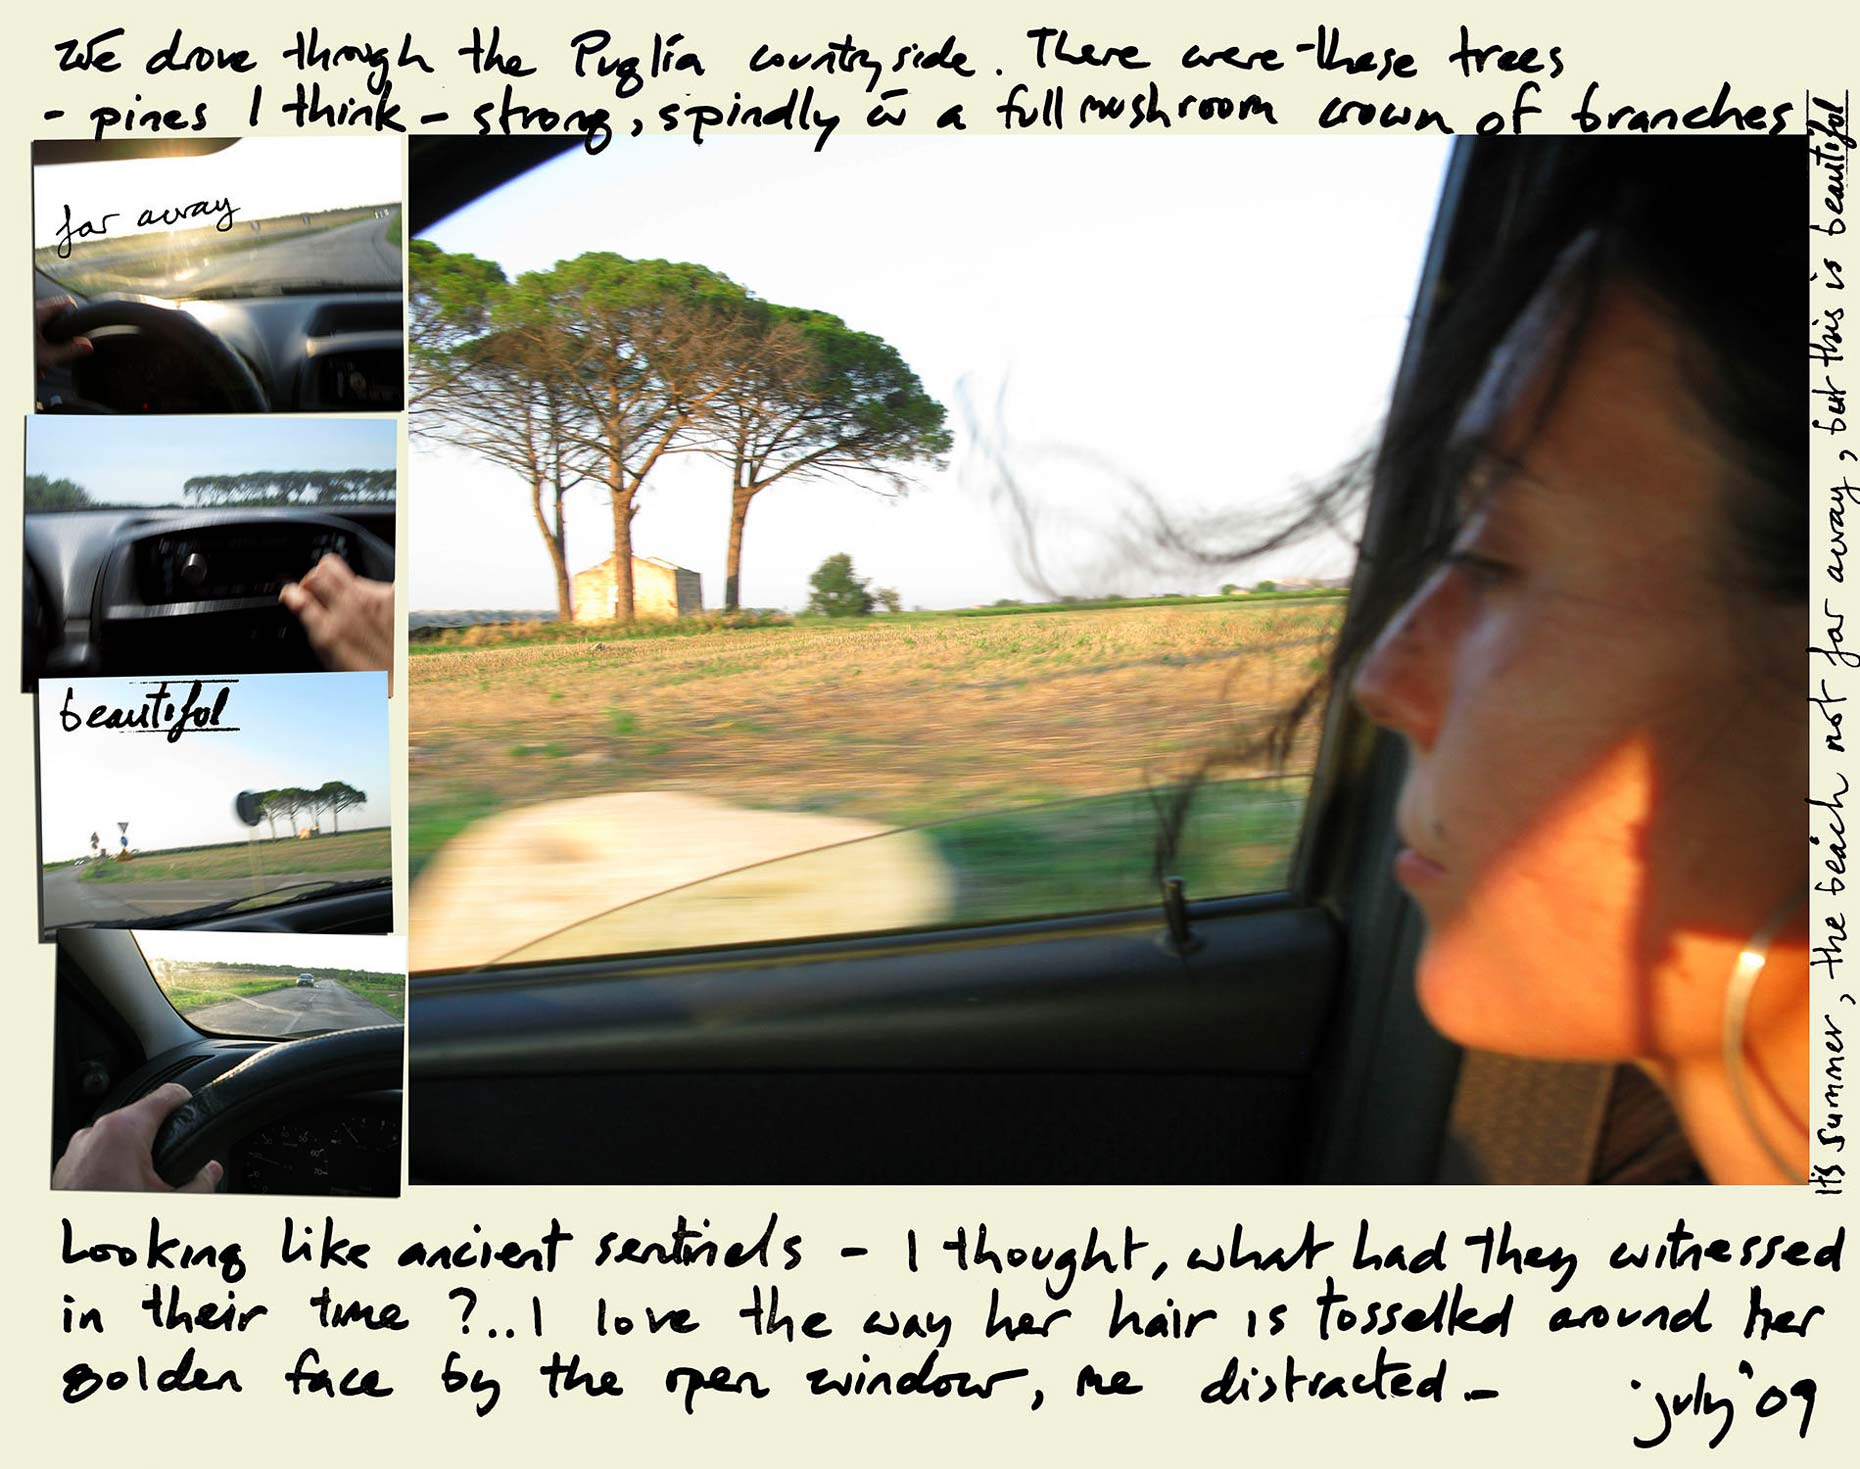 italy-puglia-driving-with-wind-blowing-her-hair